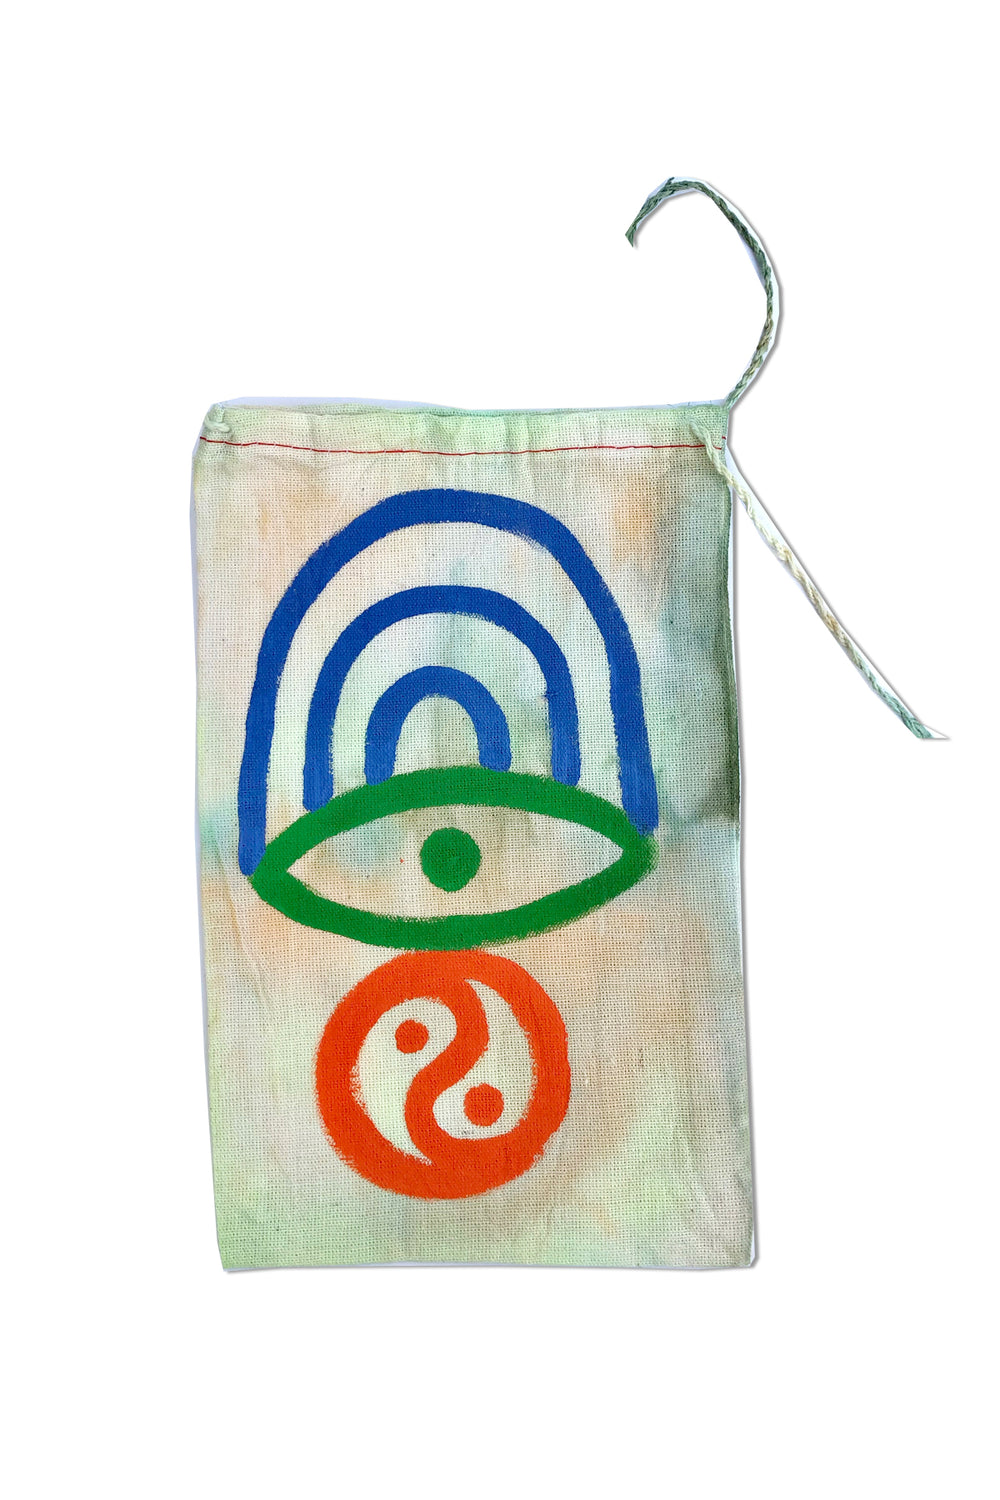 TIE DYE DRAWSTRING BAG - MULTI (SMALL)